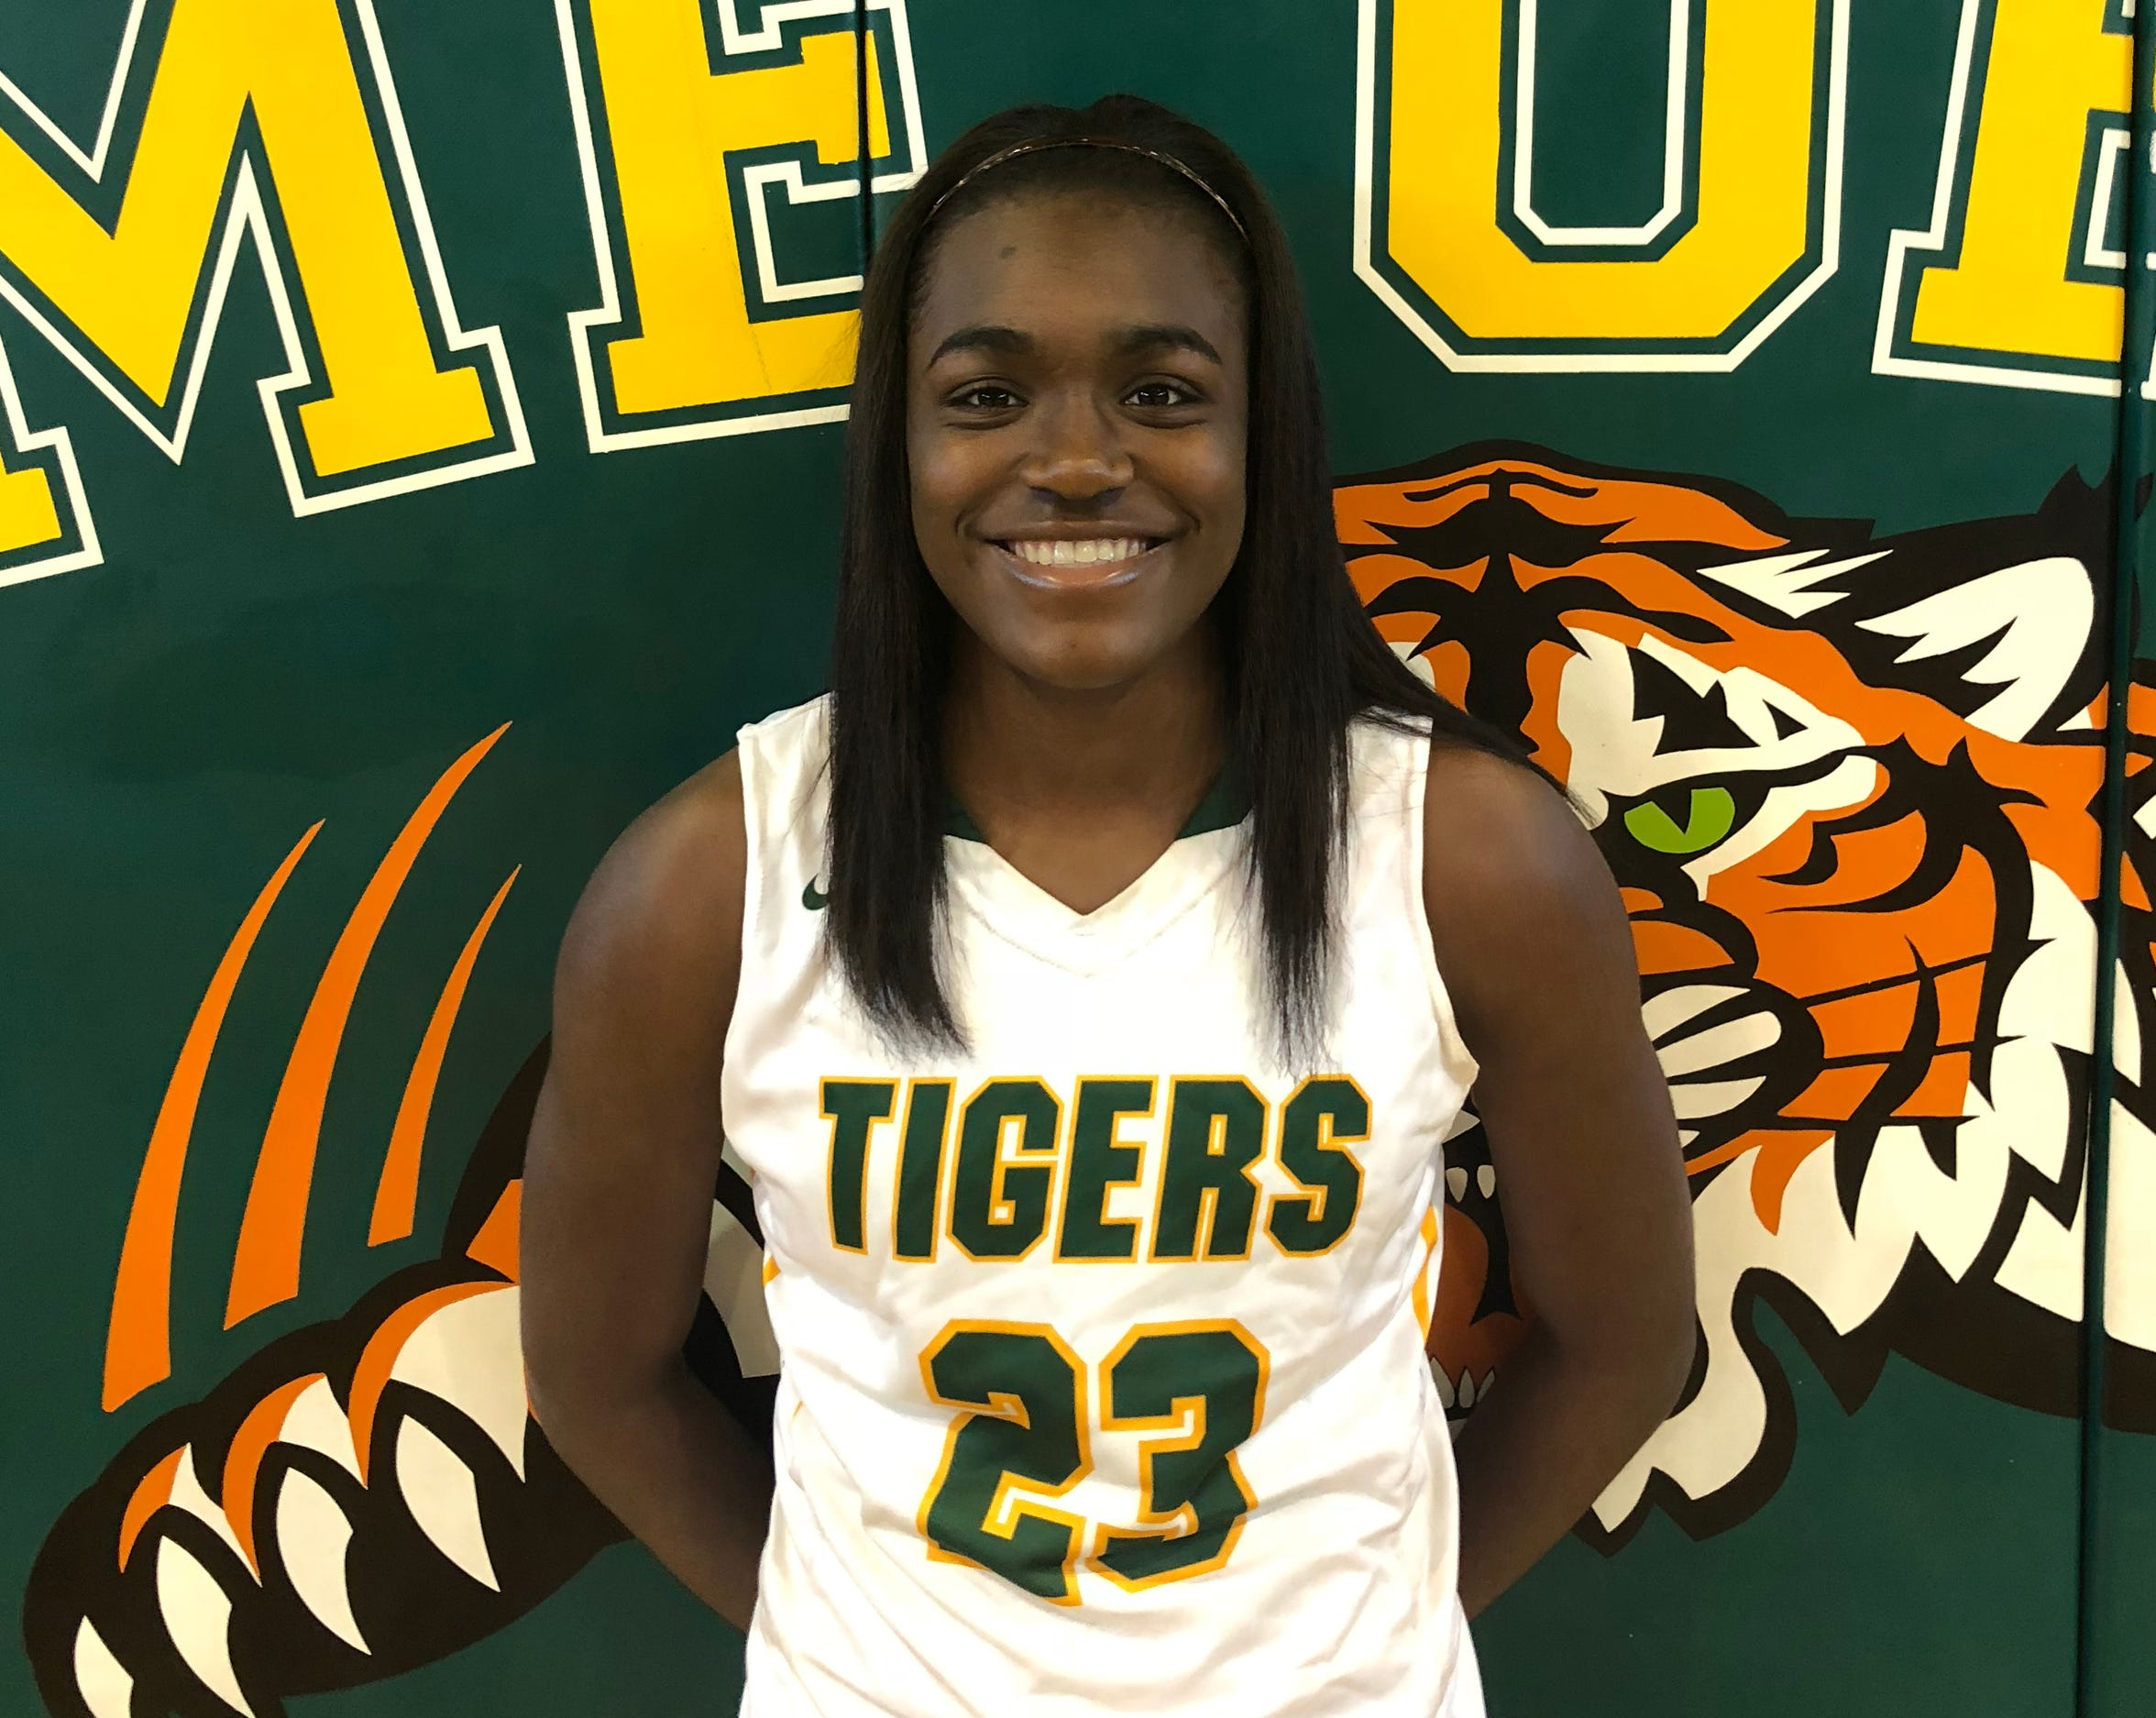 Jacorriah Bracey, a guard from Ruleville, made the 2018-19 Dandy Dozen.